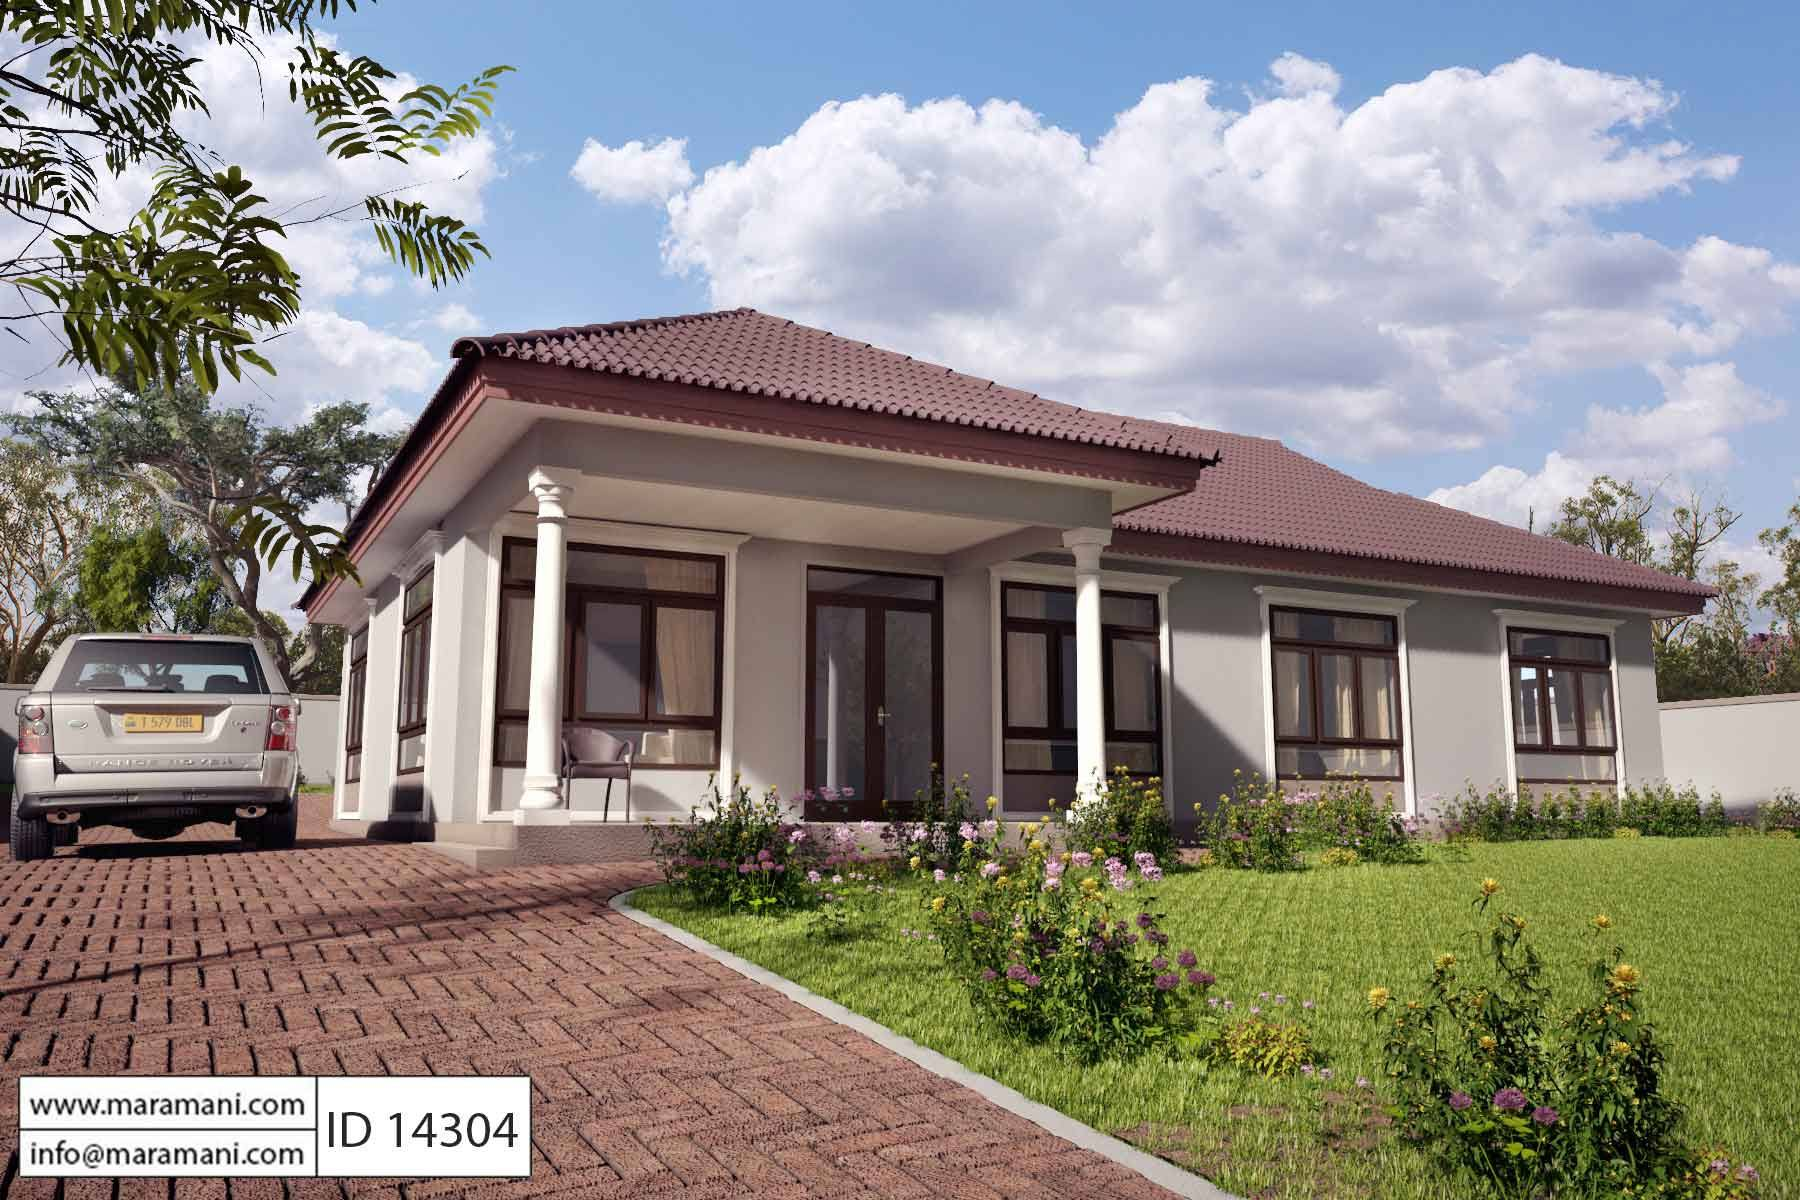 4 Bedroom House Plan ID 14304